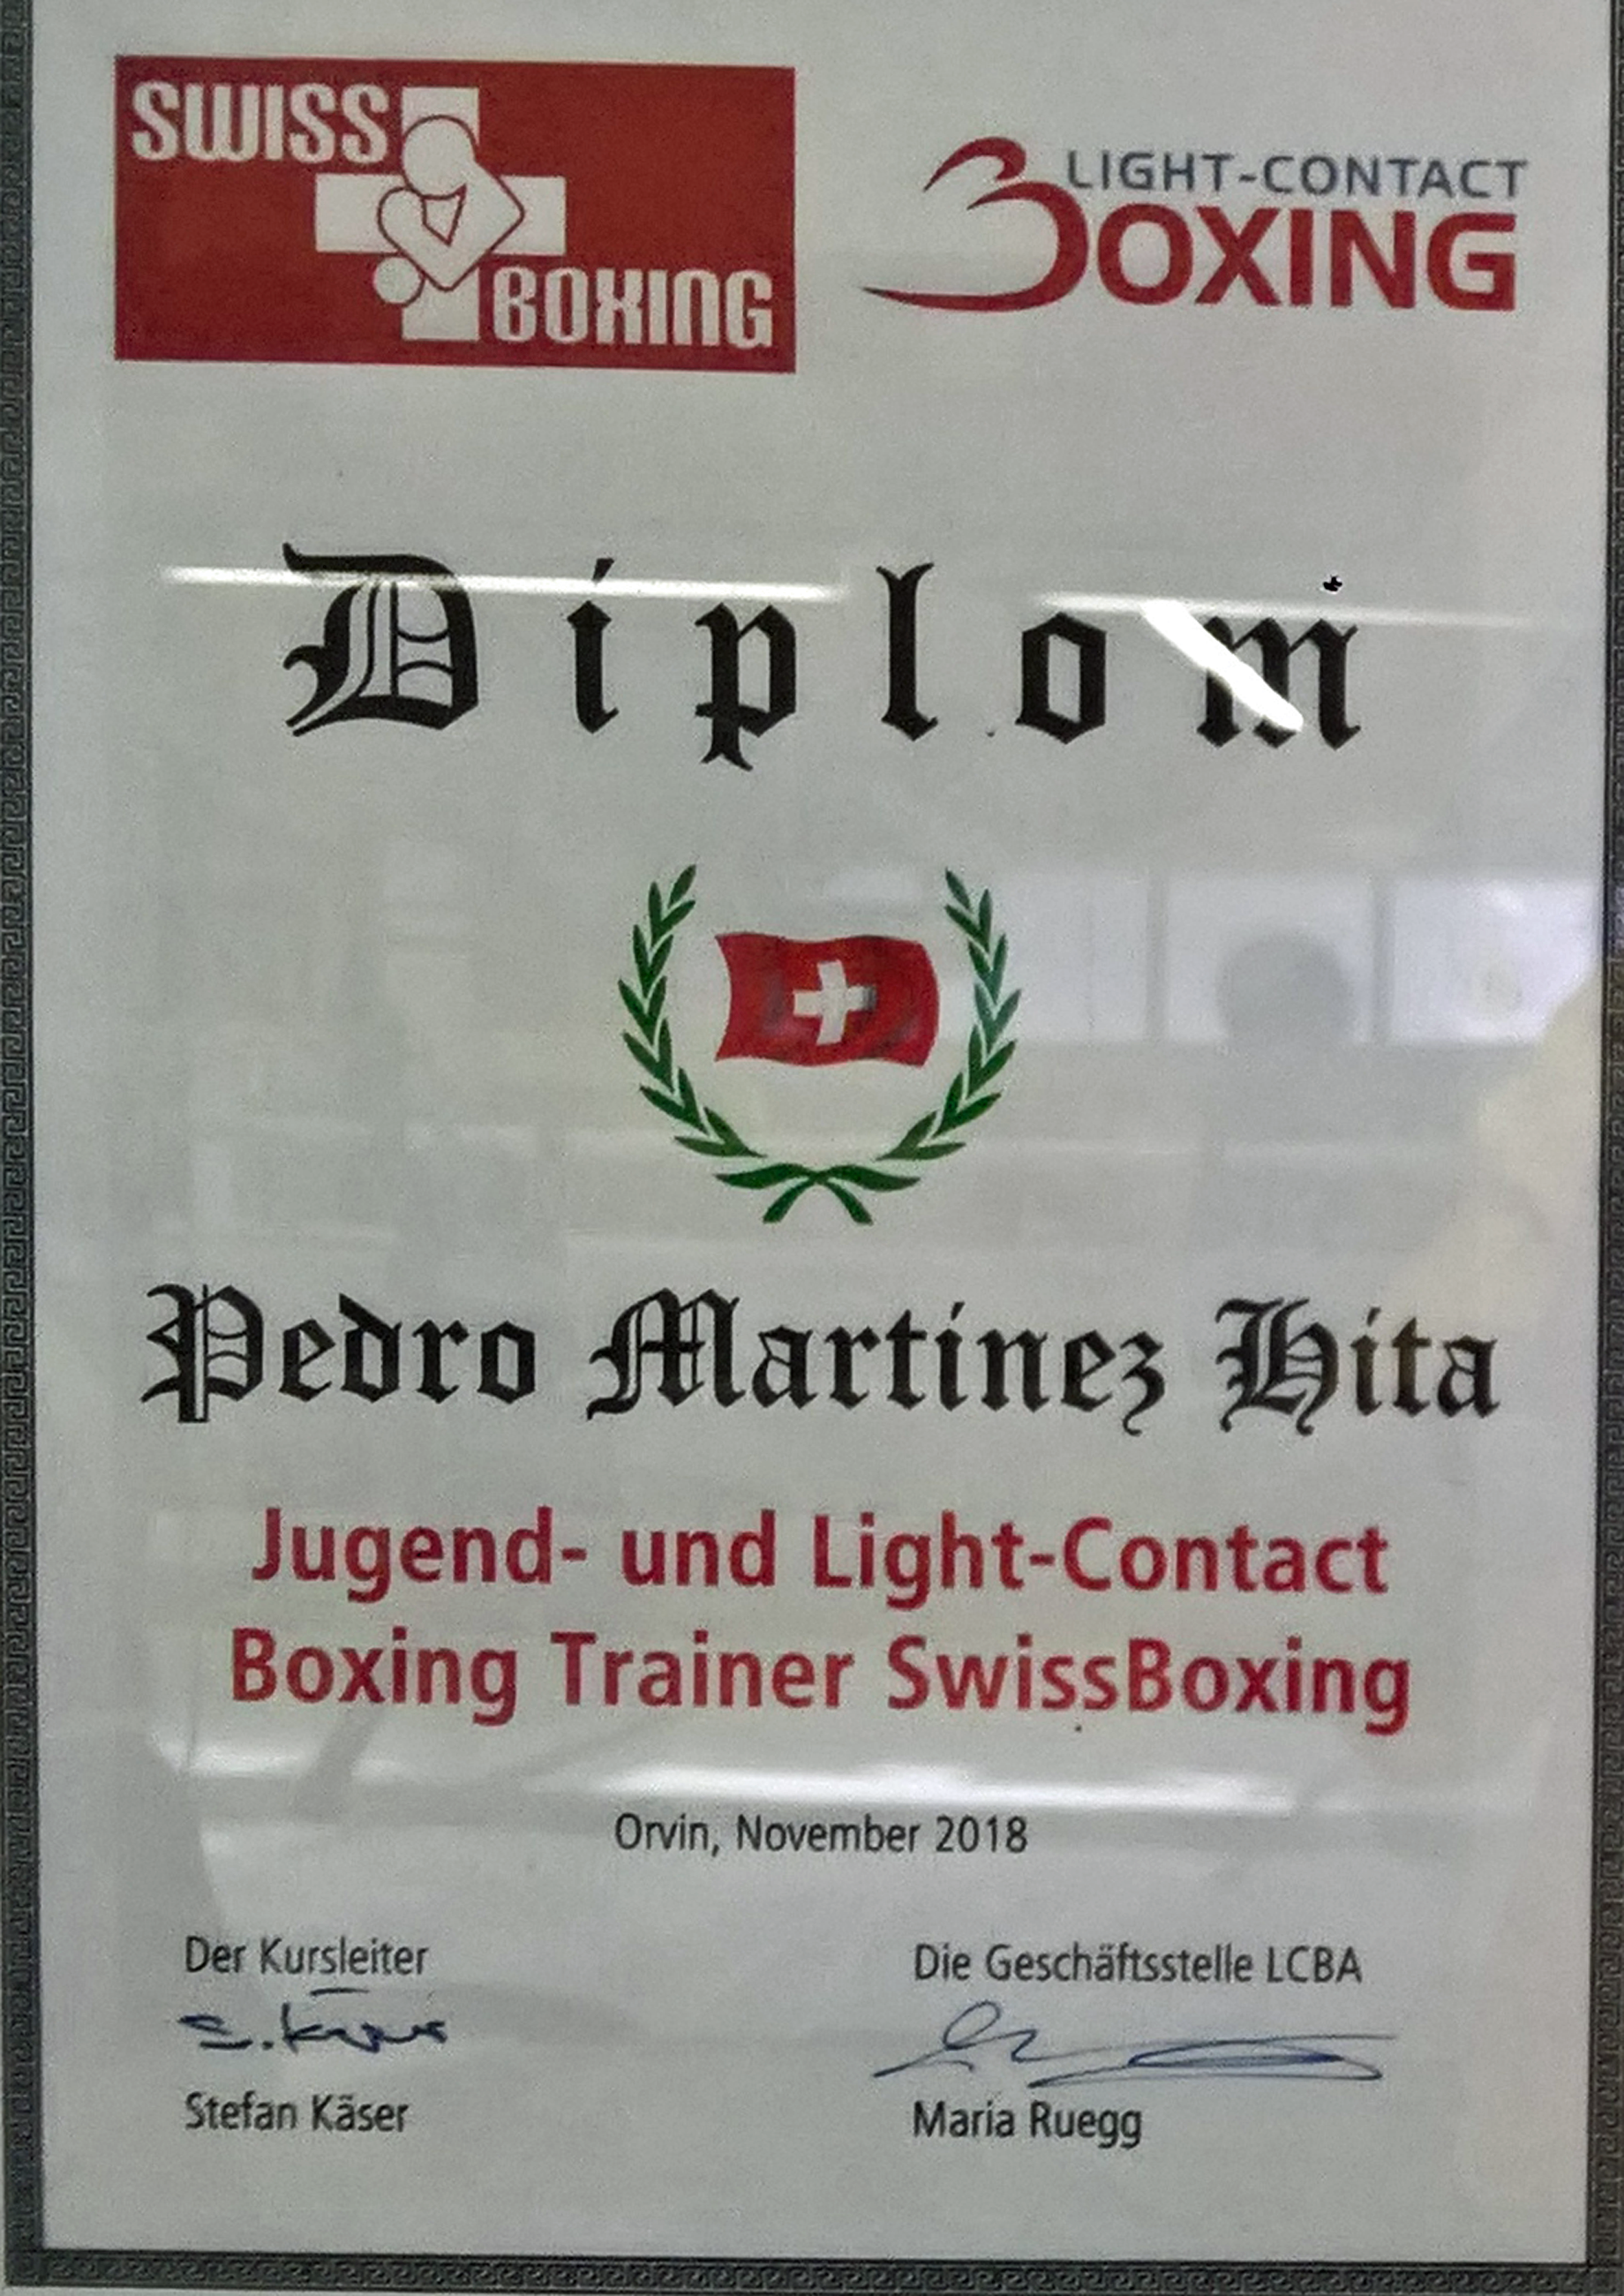 Diplom Jugend- und Light-Contact Boxing Trainer SwissBoxing